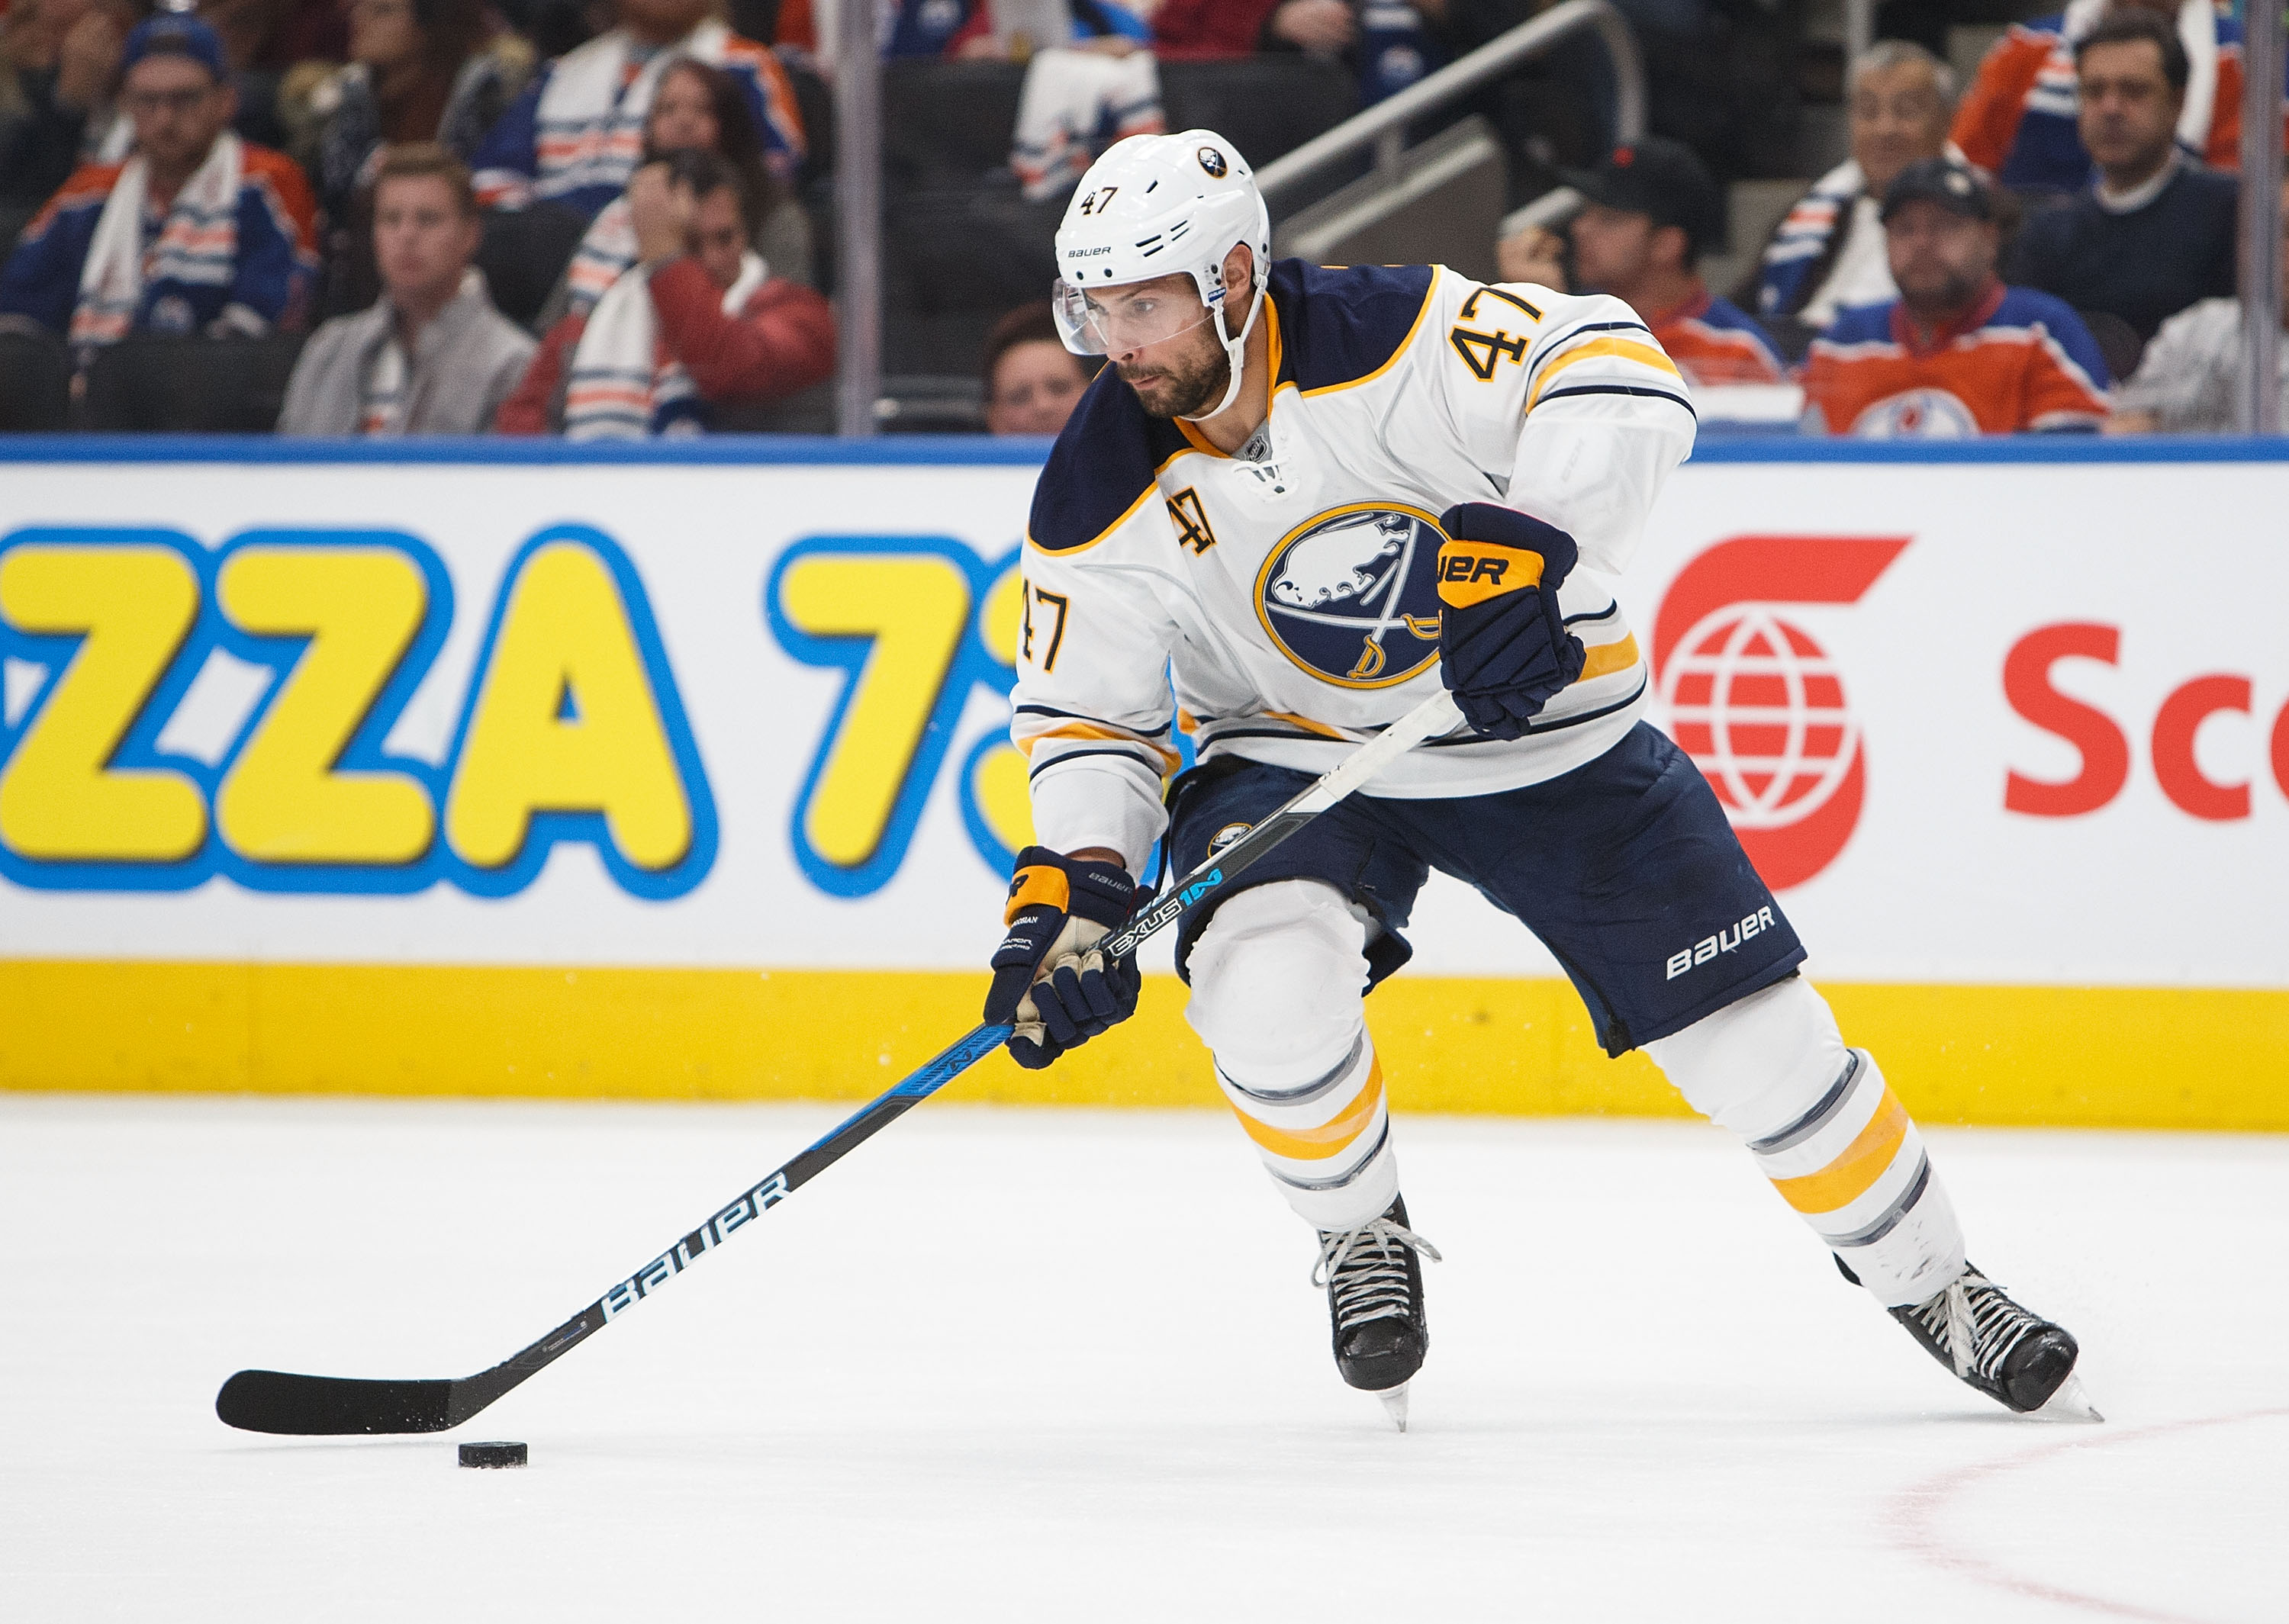 Sabres defenseman Zach Bogosian will play for the first time since Nov. 1. (Getty Images)